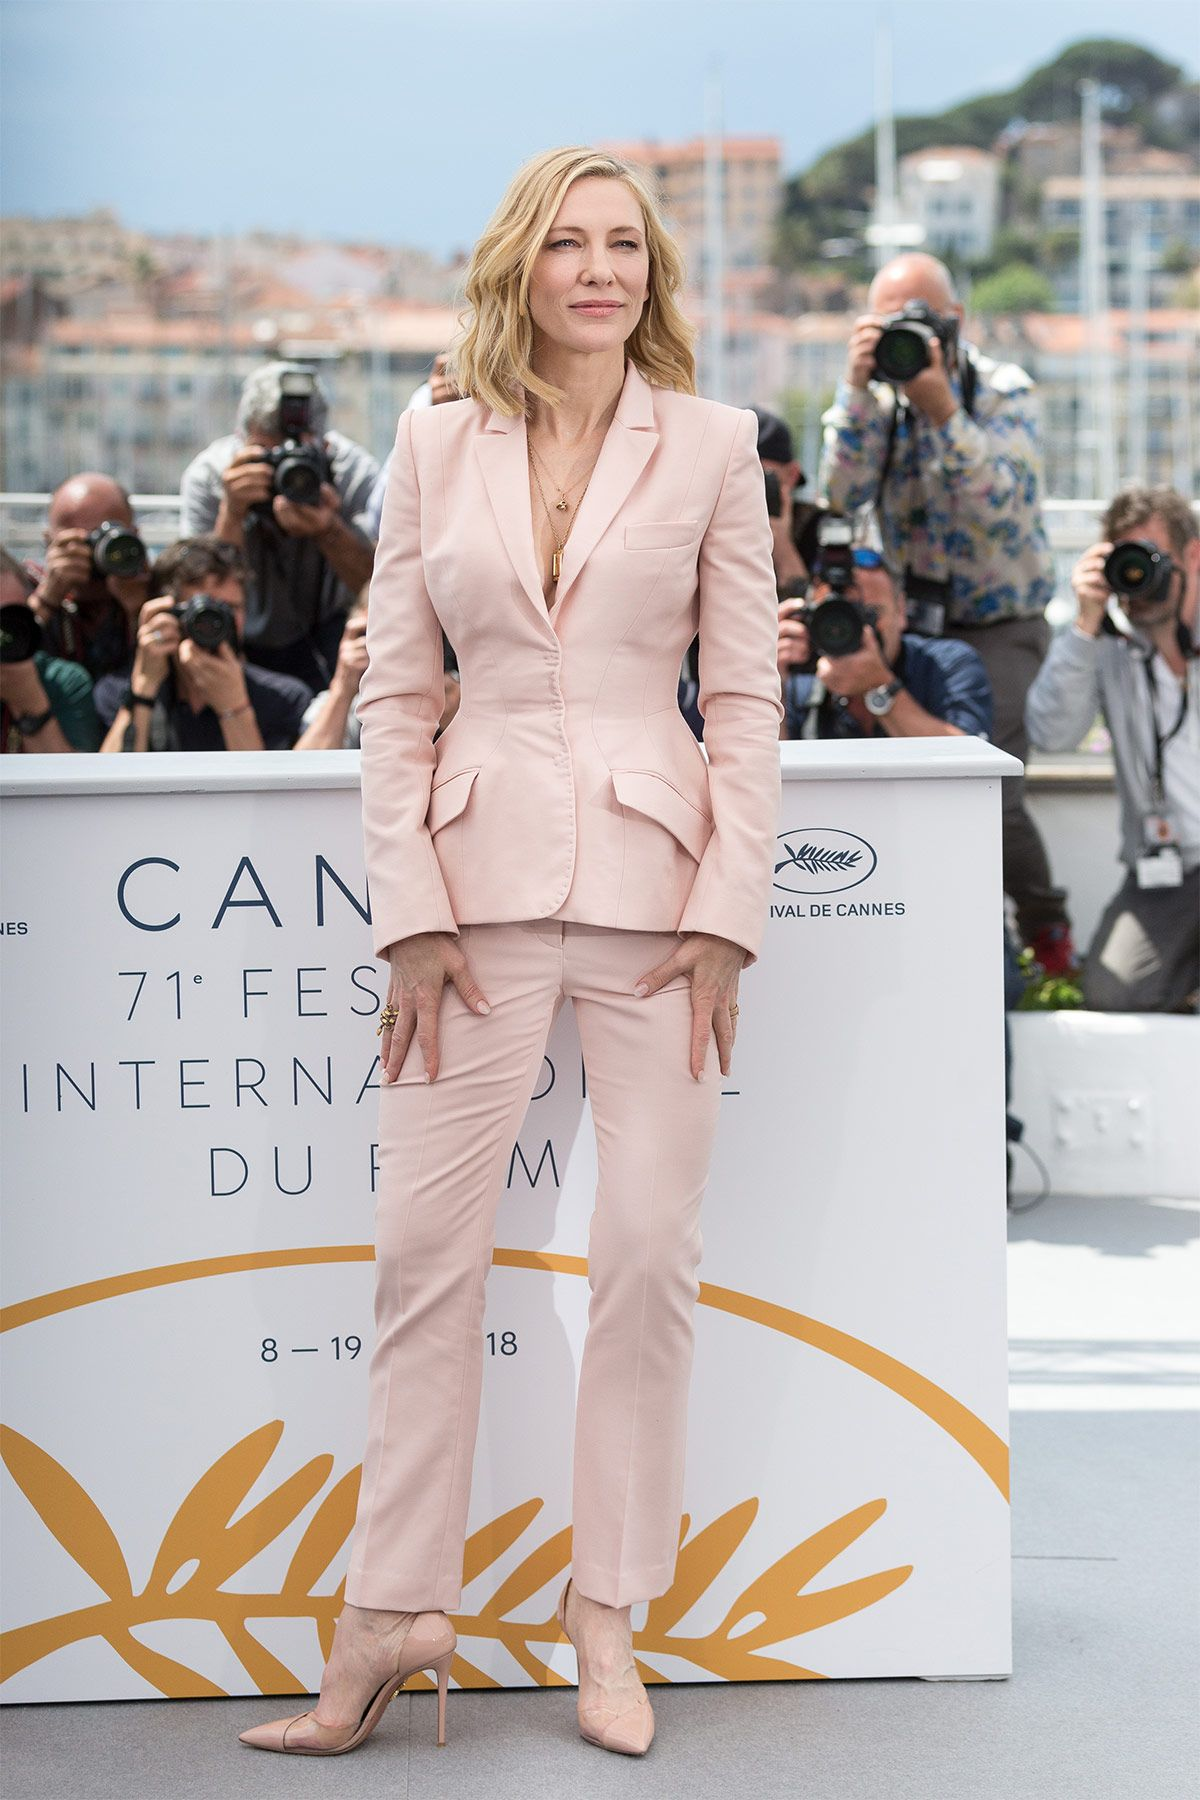 Festival Cannes, Festival Cannes 2018, jurado Festival Cannes, Cate Blanchett